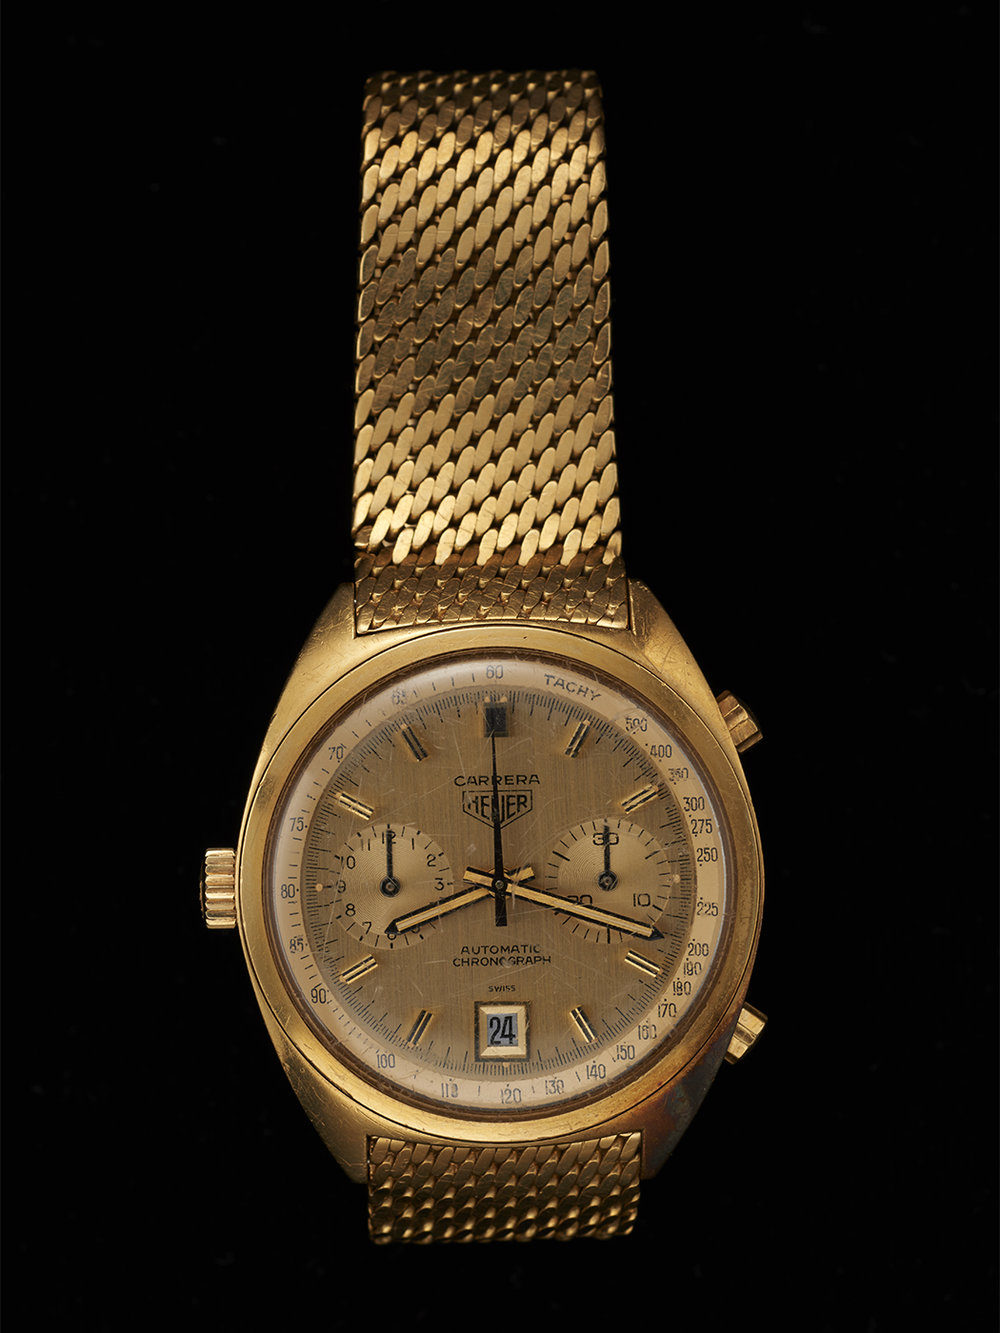 Mario Andretti's Gold Heuer given to him by Jack Heuer when he raced for Ferrari